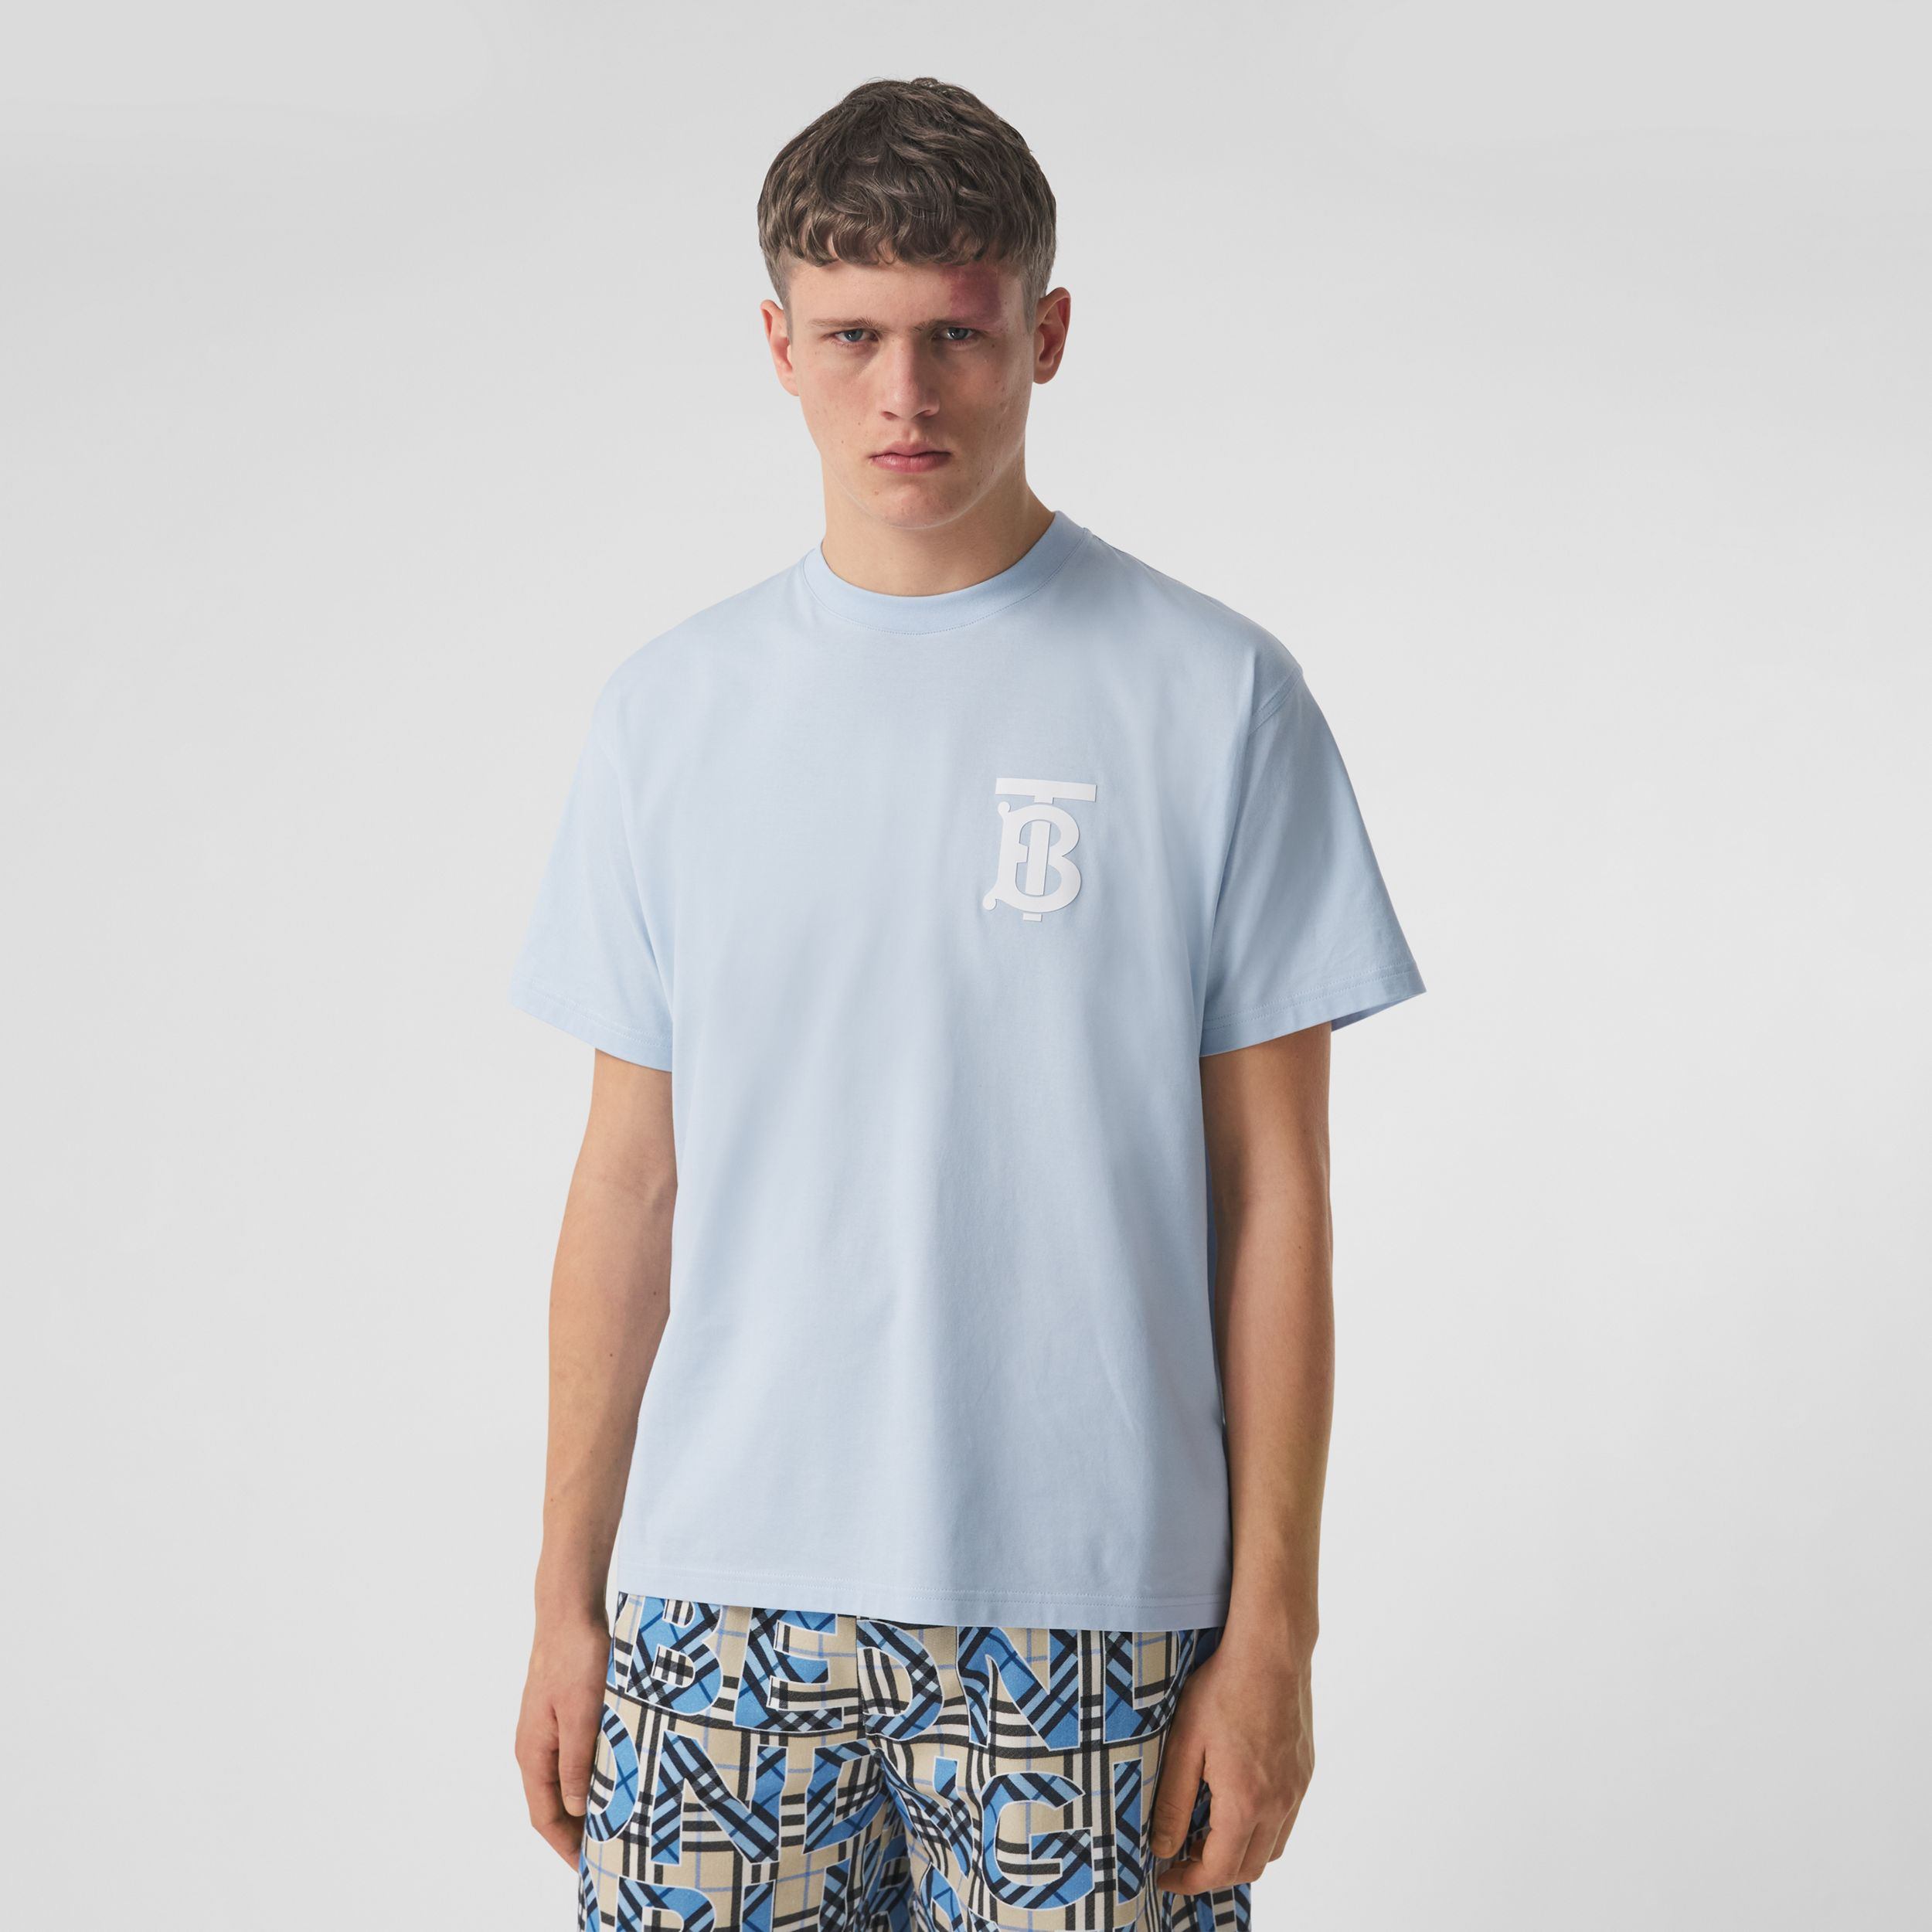 Monogram Motif Cotton Oversized T-shirt in Pale Blue - Men | Burberry - 1